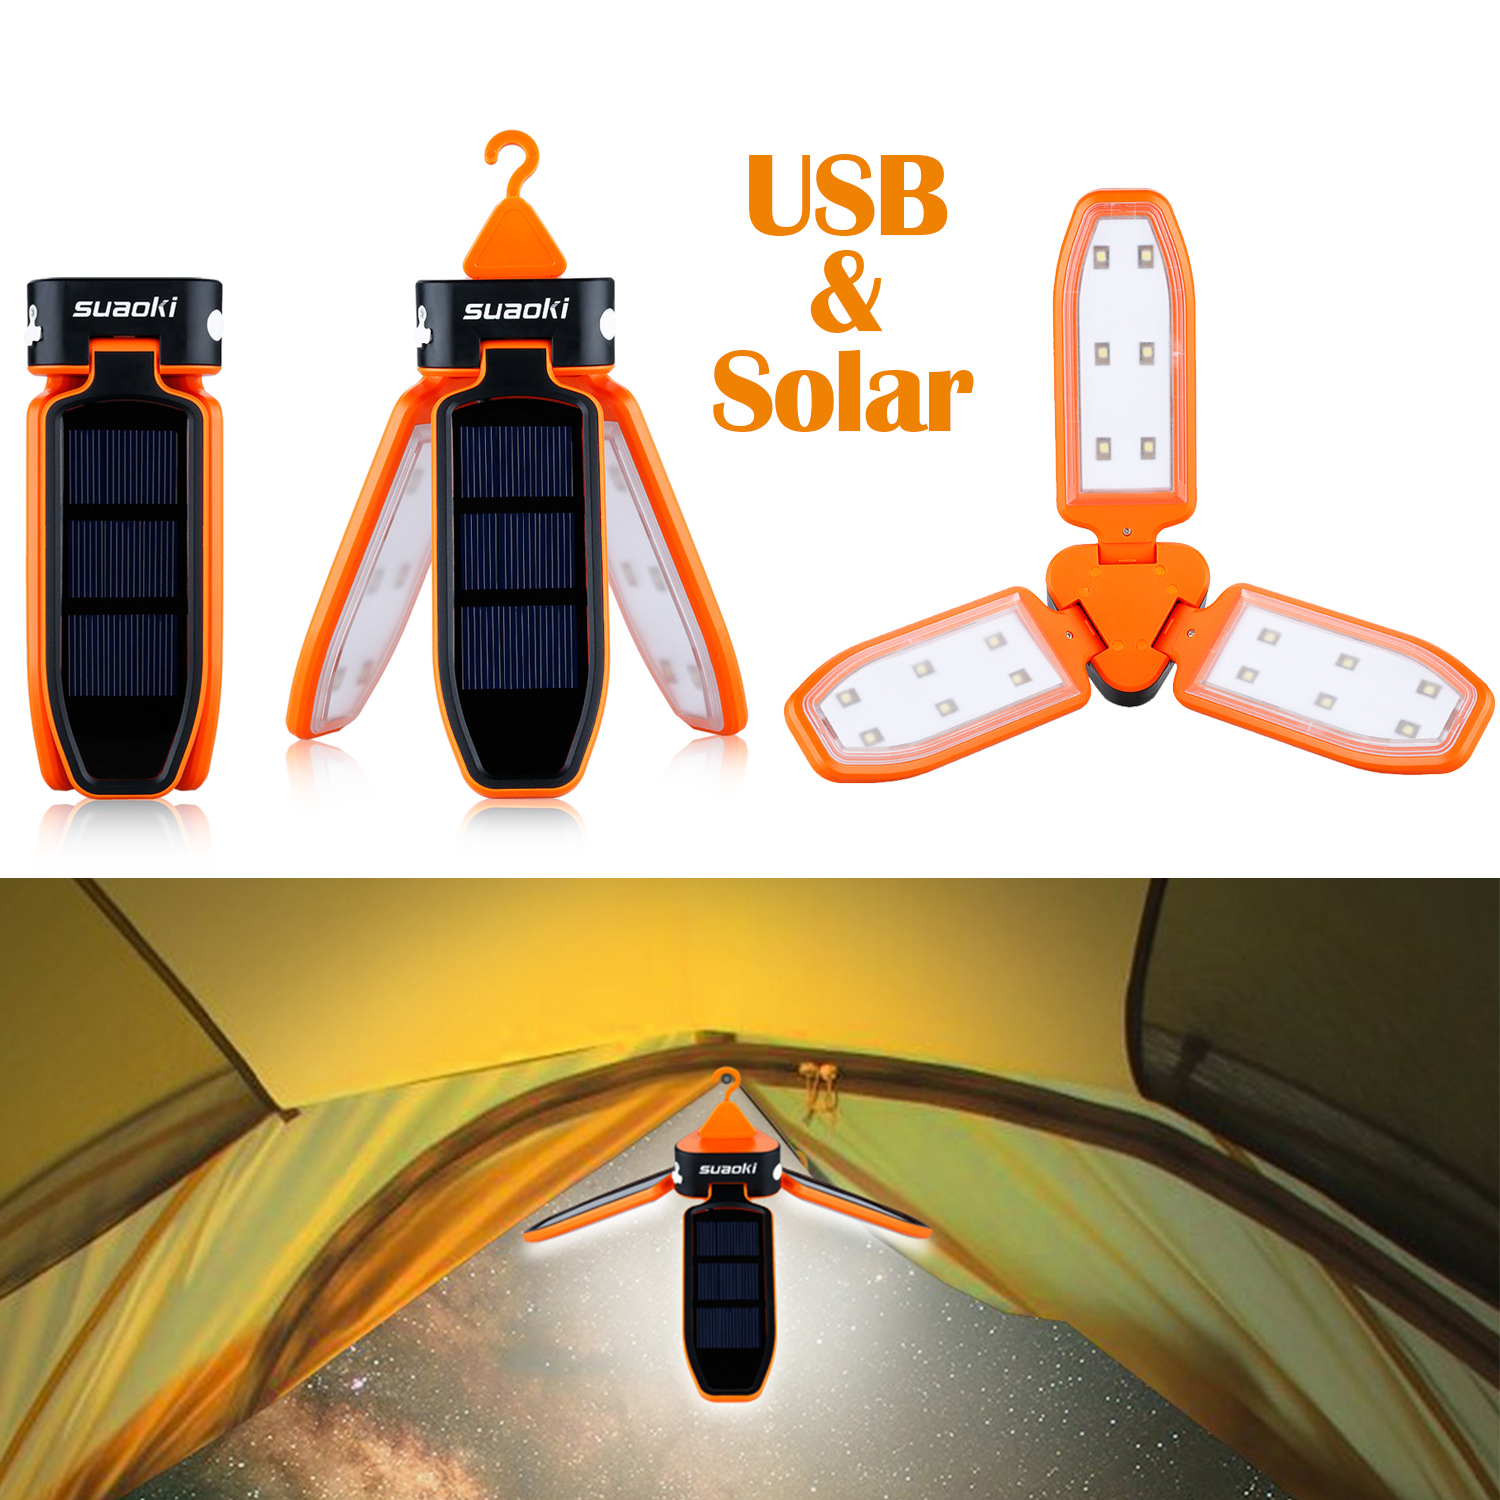 Suaoki Outdoor Solar Lights, Collapsible Tent LED Light Rechargeable USB & Three Individual Solar Panels Lantern Emergency for Traveling, Camping, Hiking, Fishing